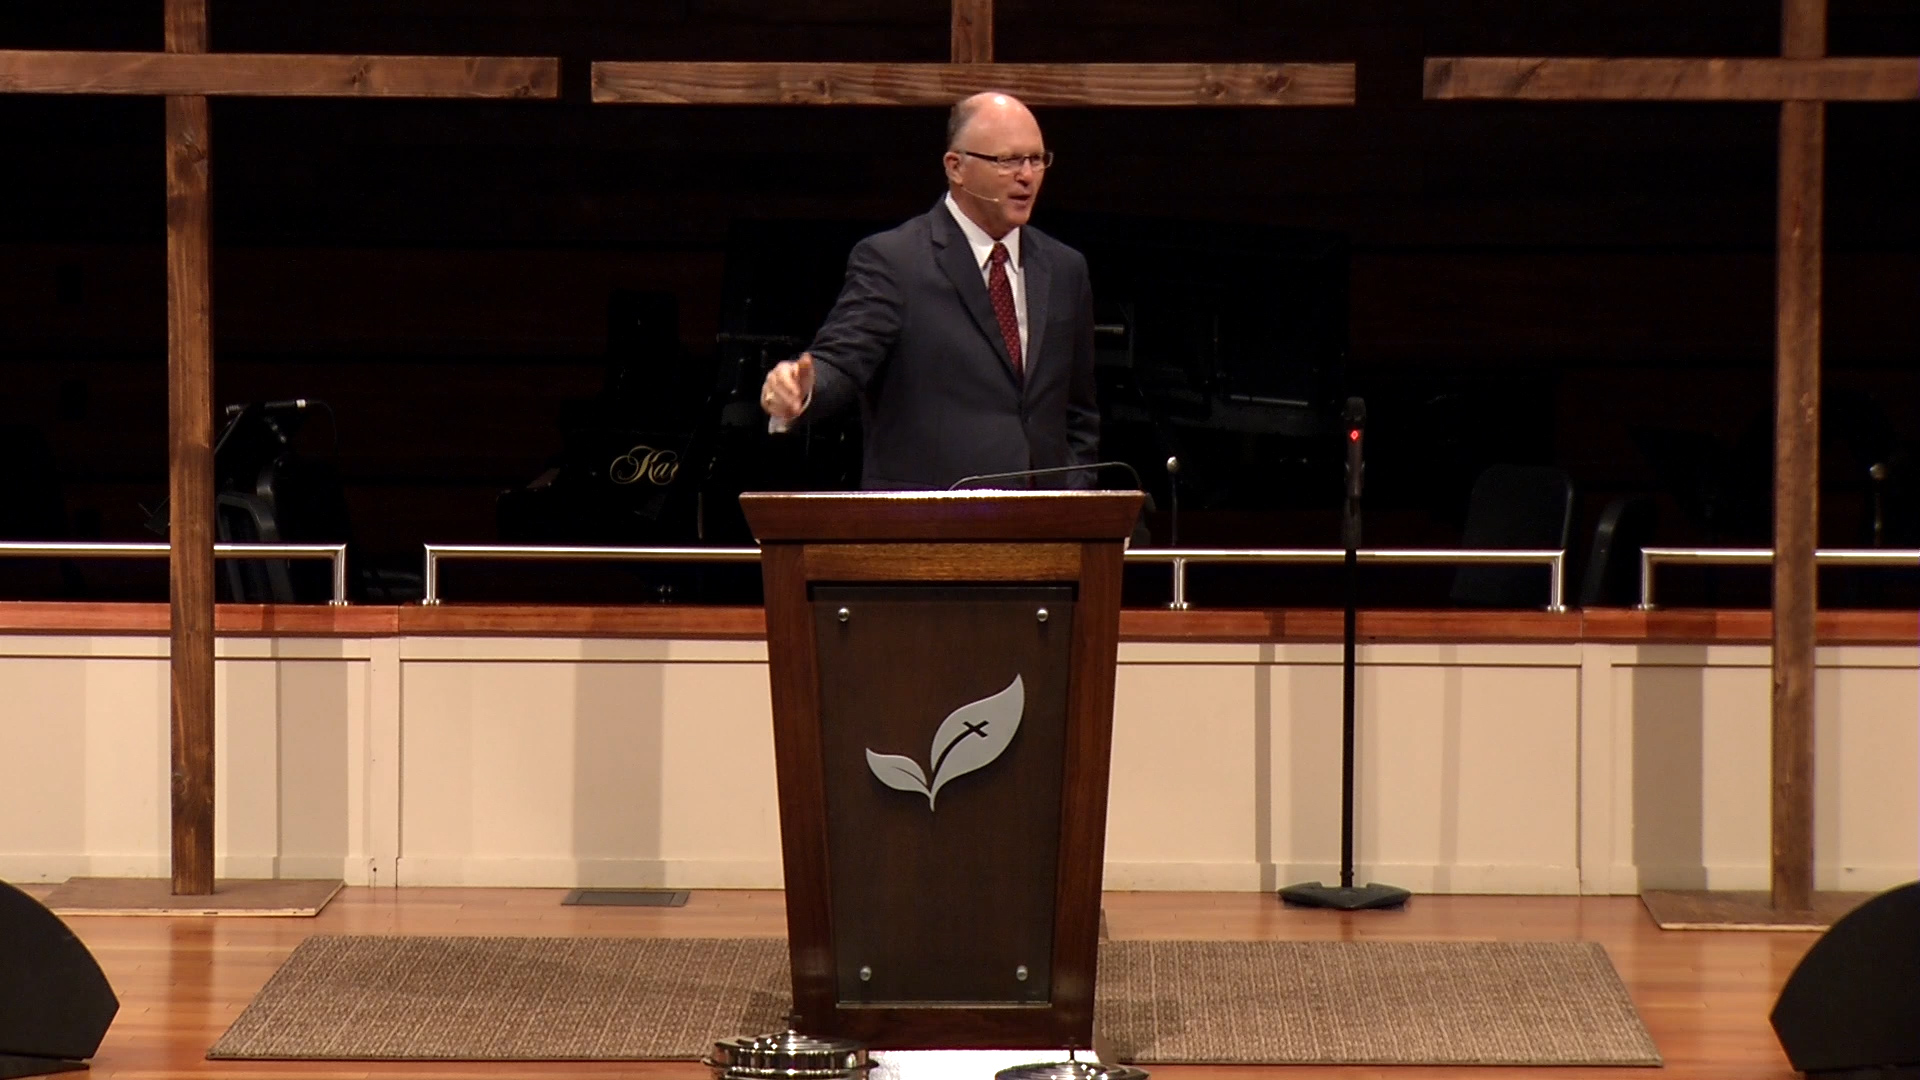 Pastor Paul Chappell: Three Lessons from the Lord's Table